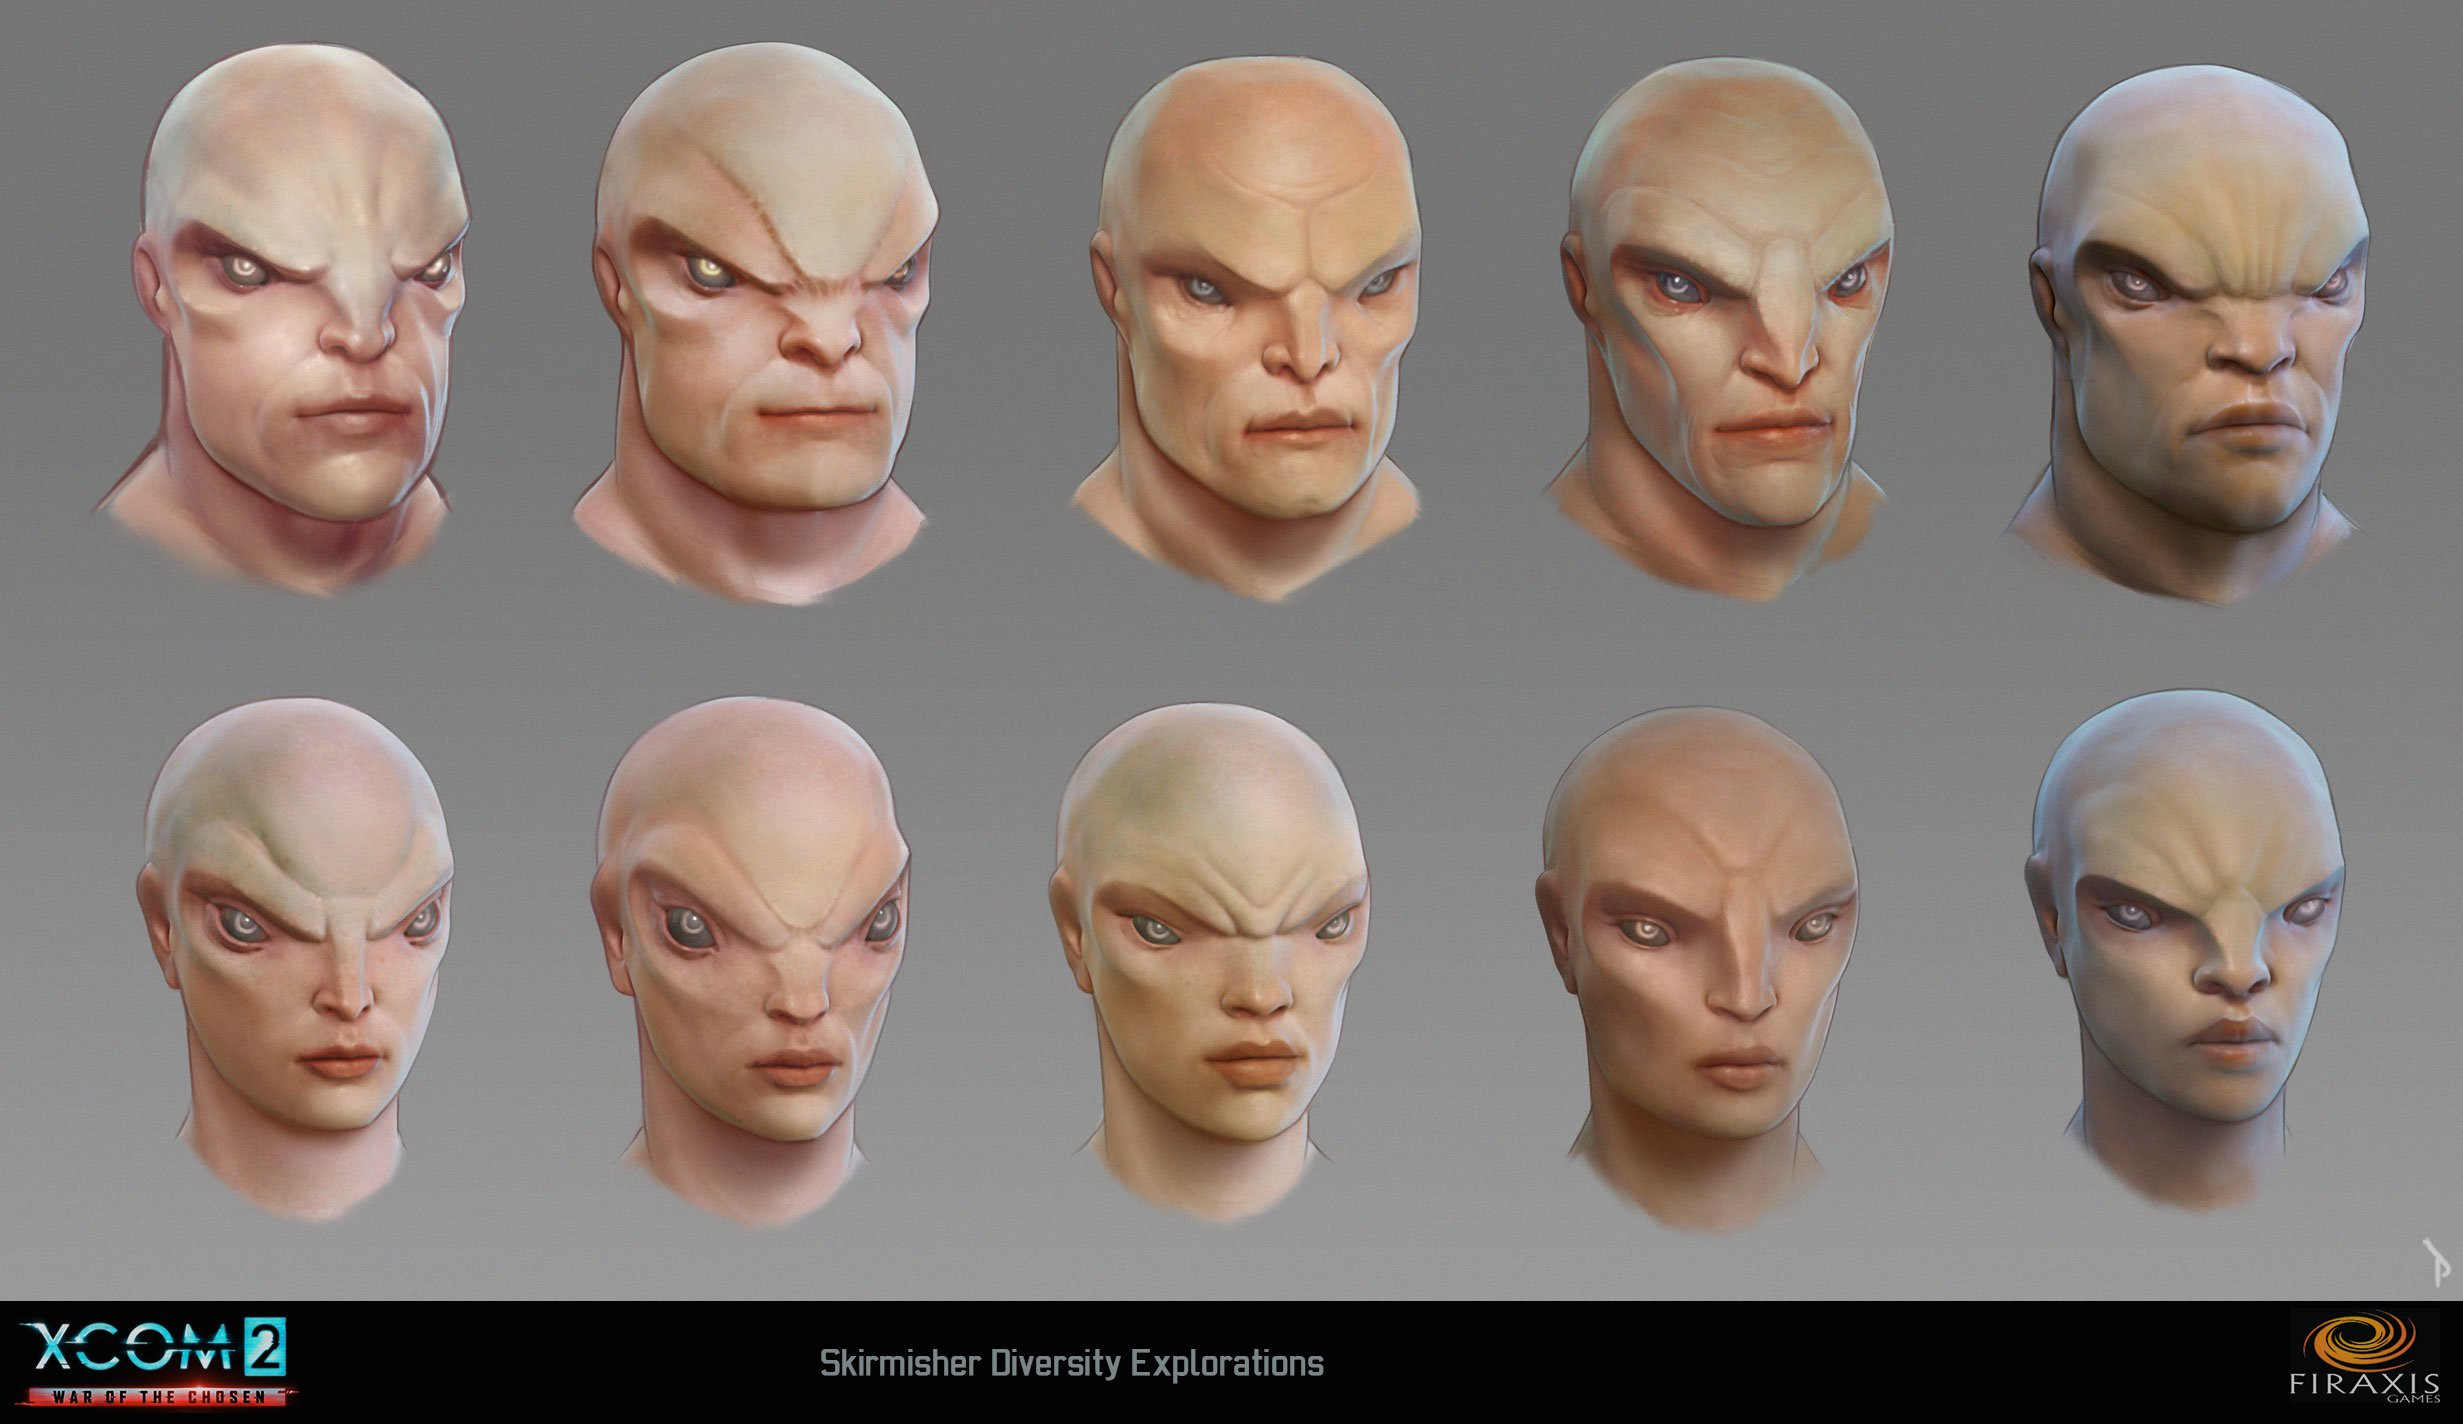 Skirmisher head diversity studies